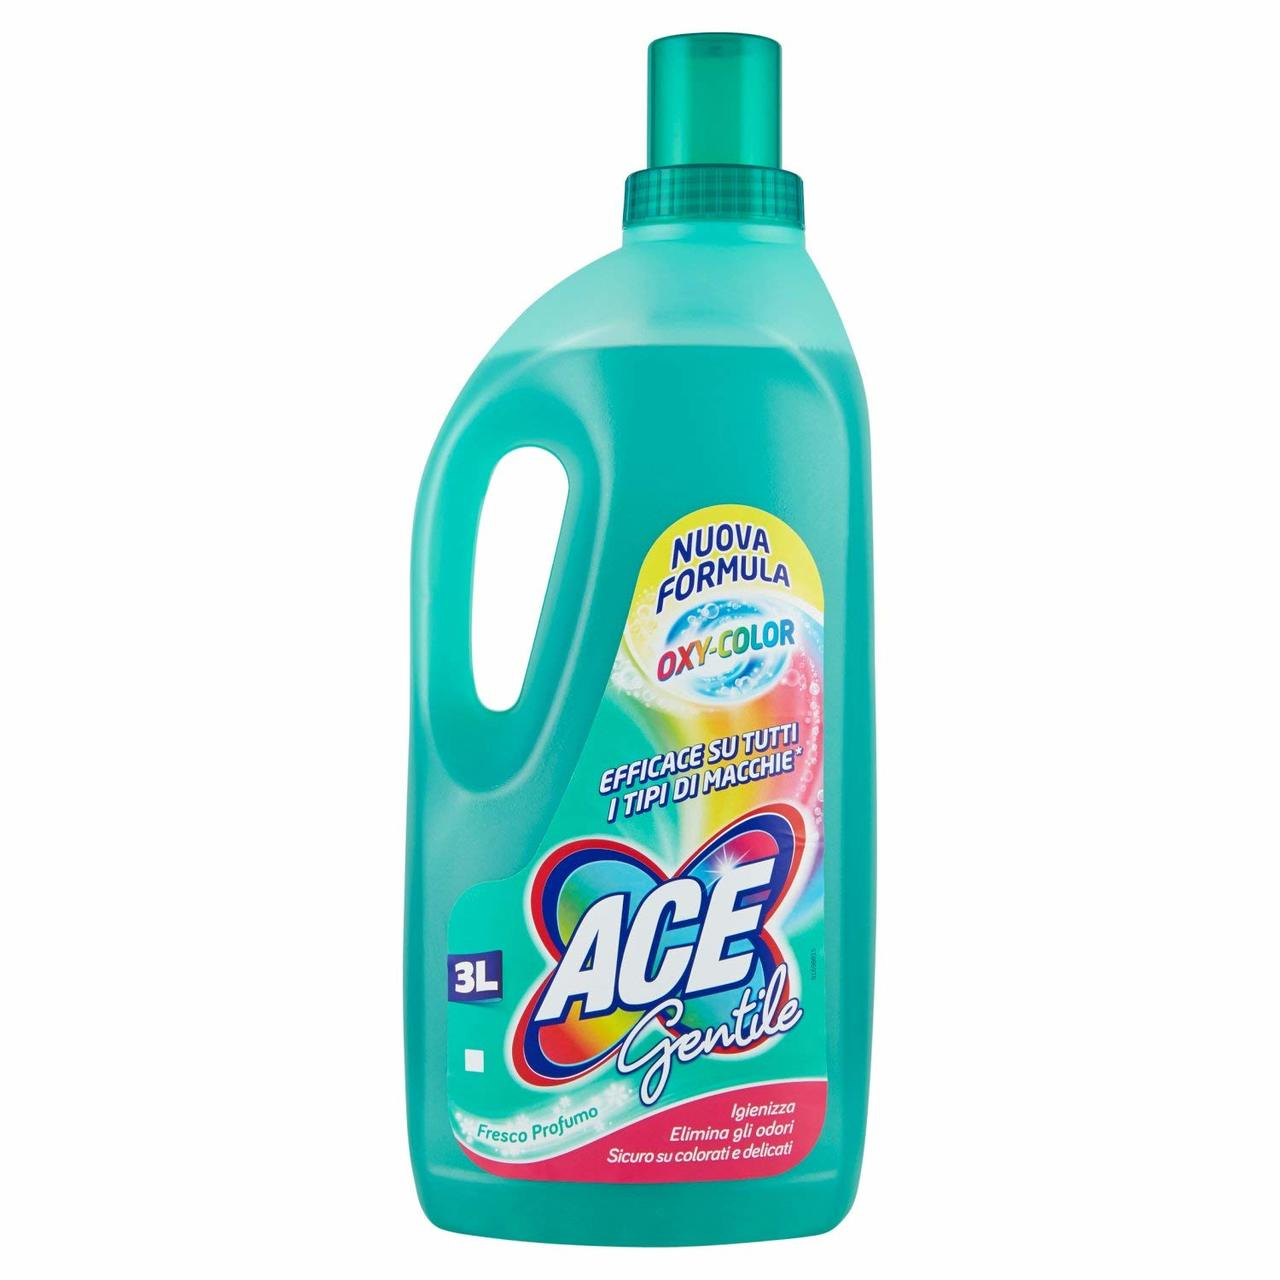 ACE GENTILE REGULAR 3L